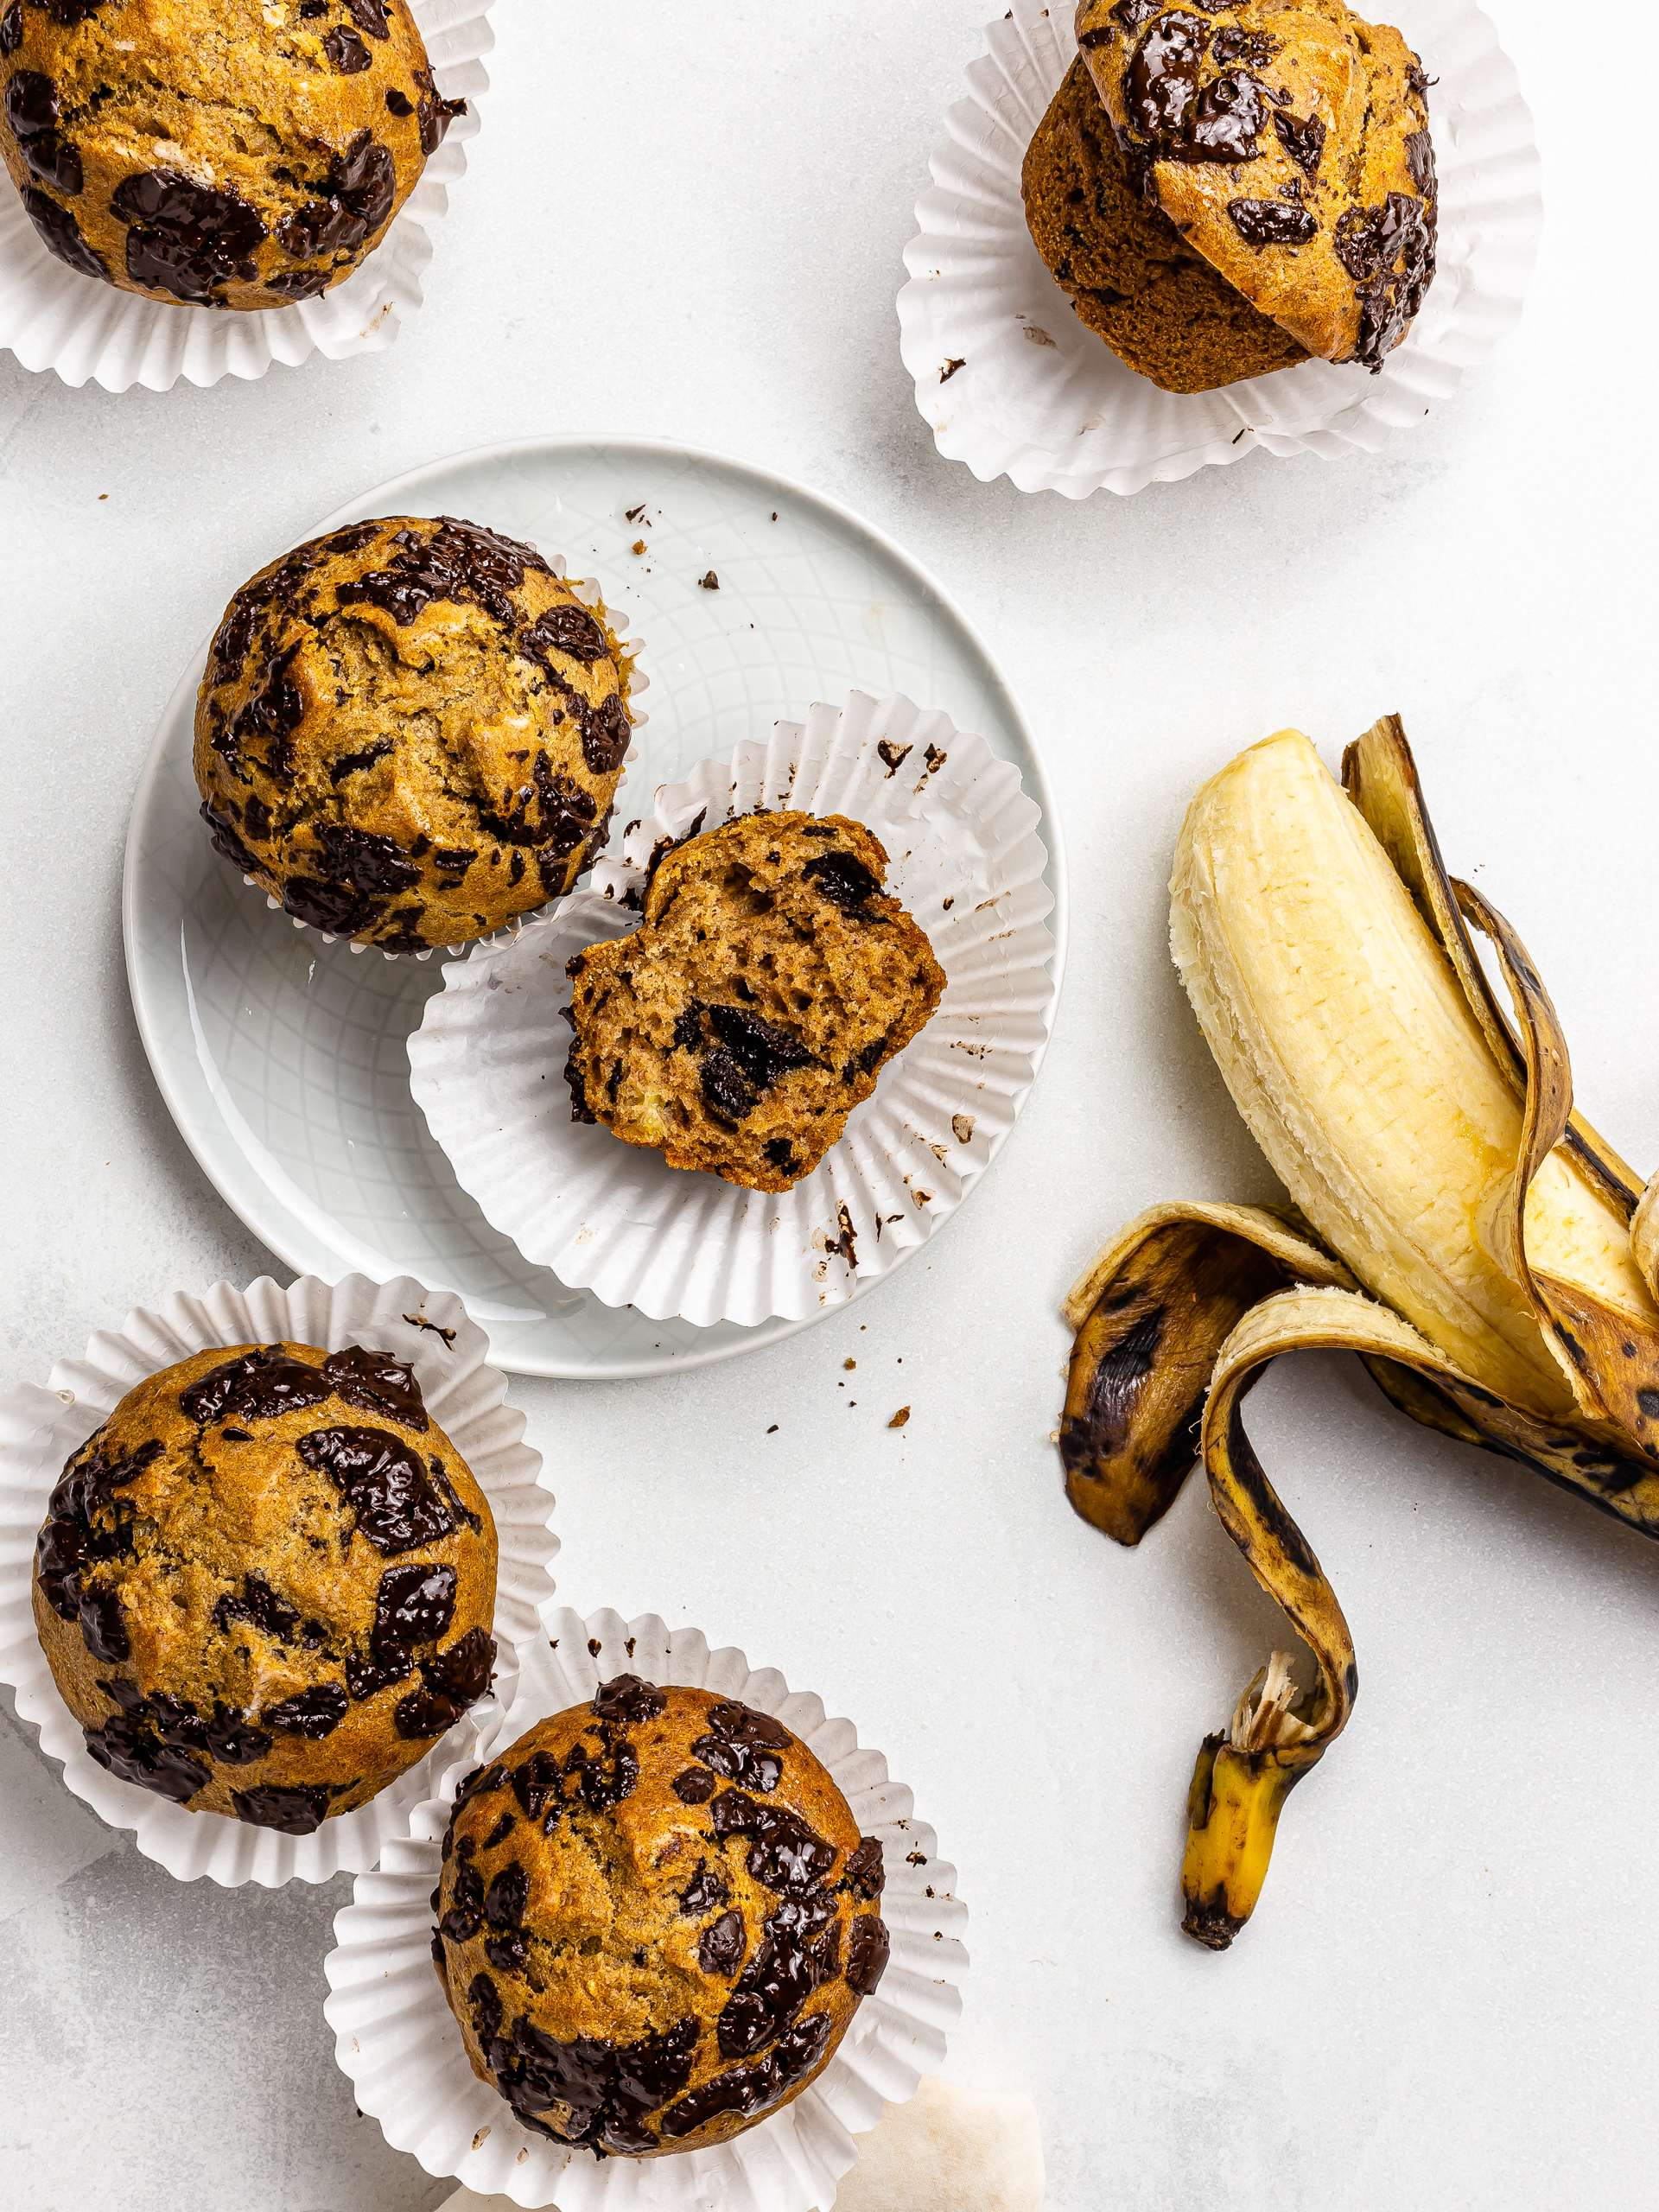 Vegan Plantain Muffins with Chocolate Chips